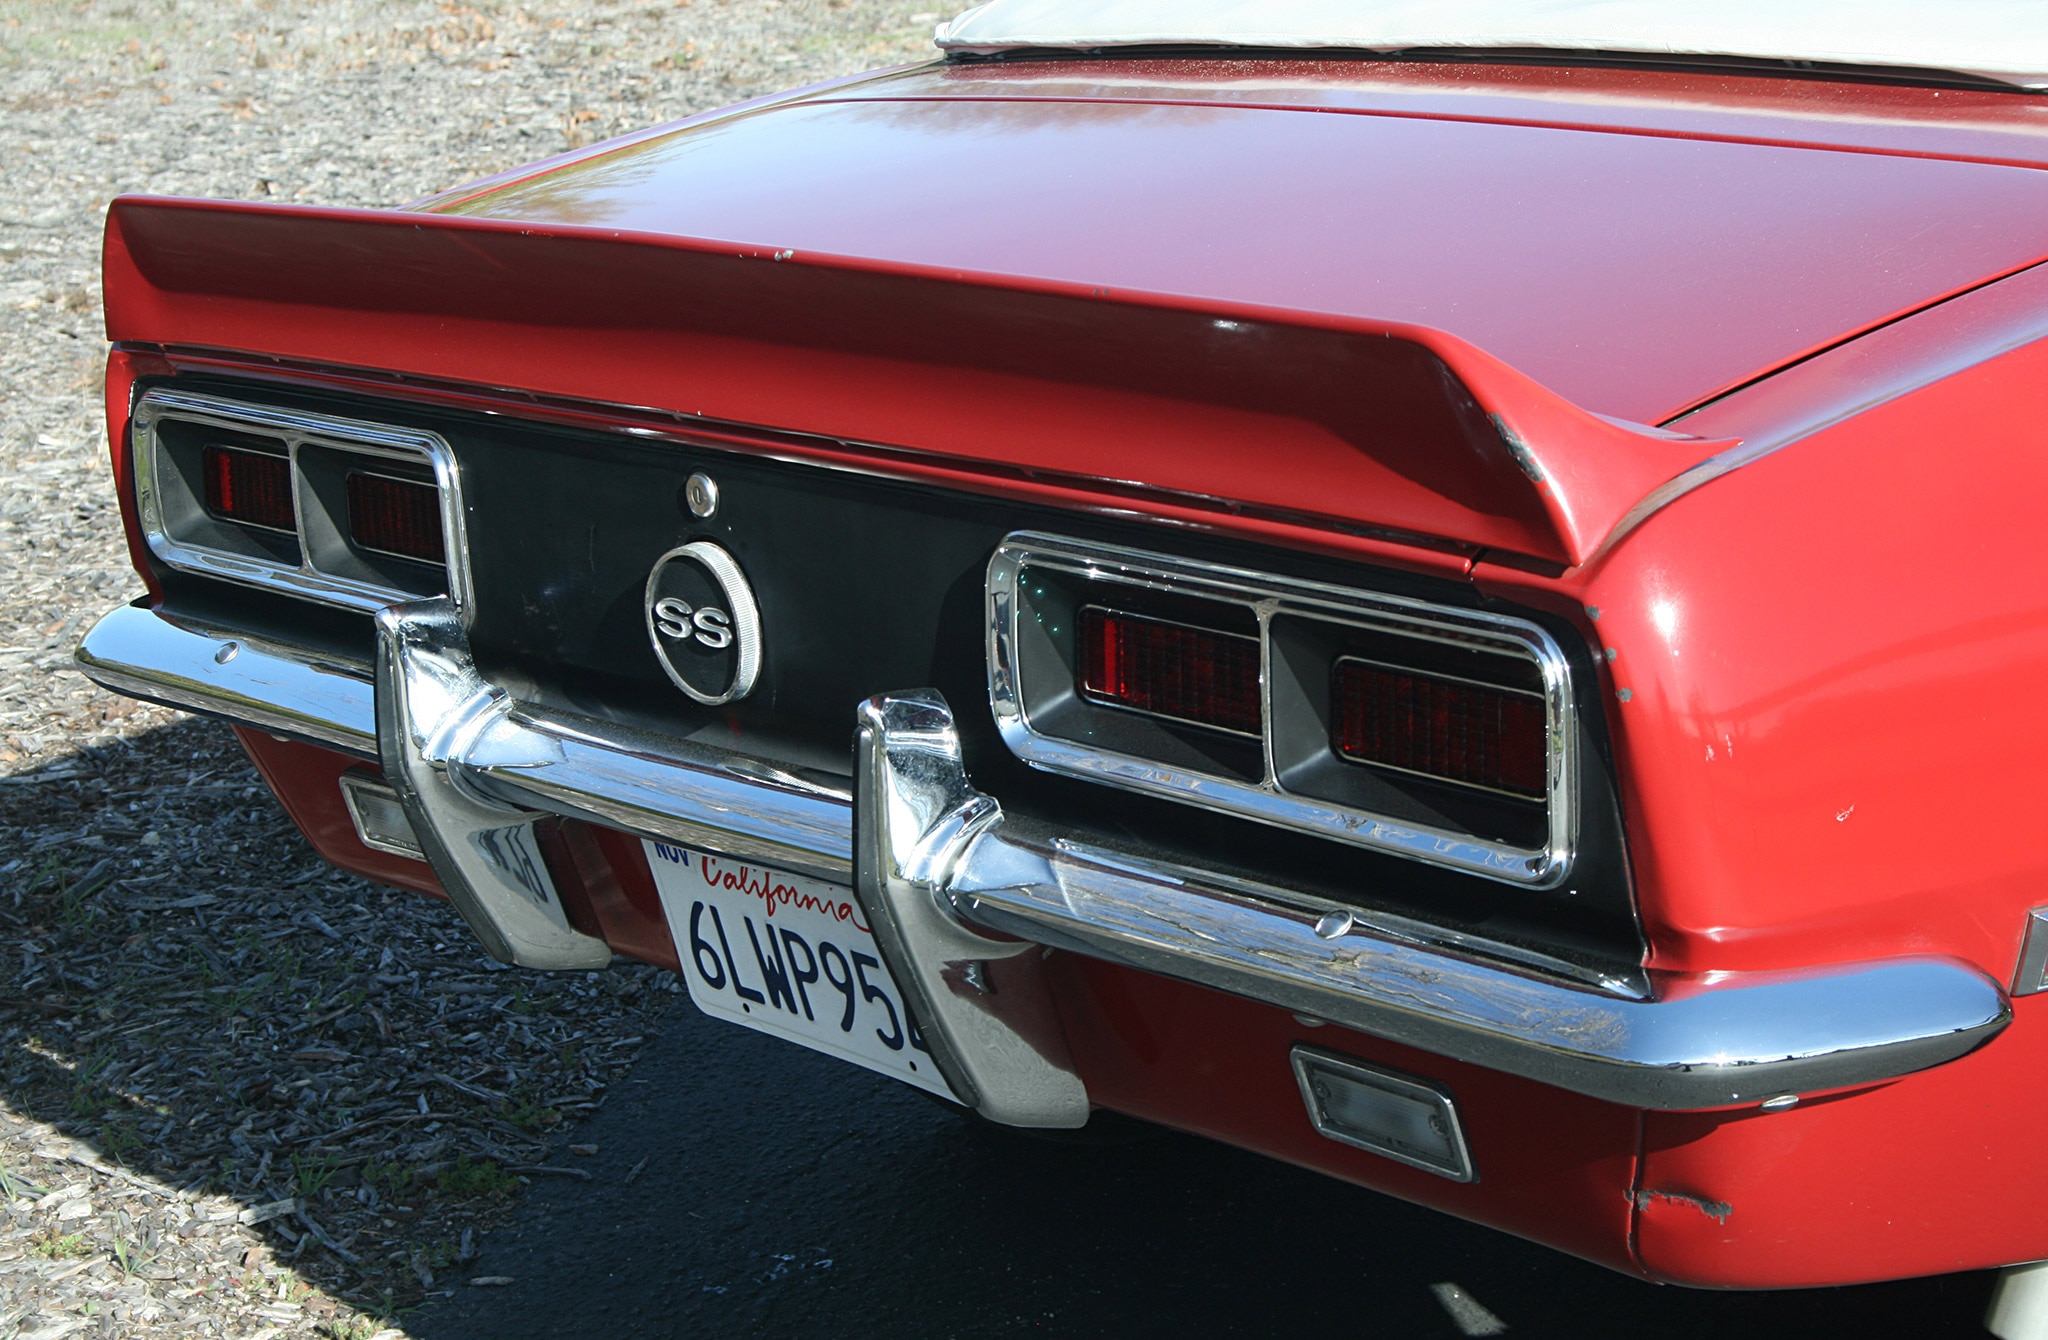 1968 Chevrolet Camaro Ss Rear Taillights